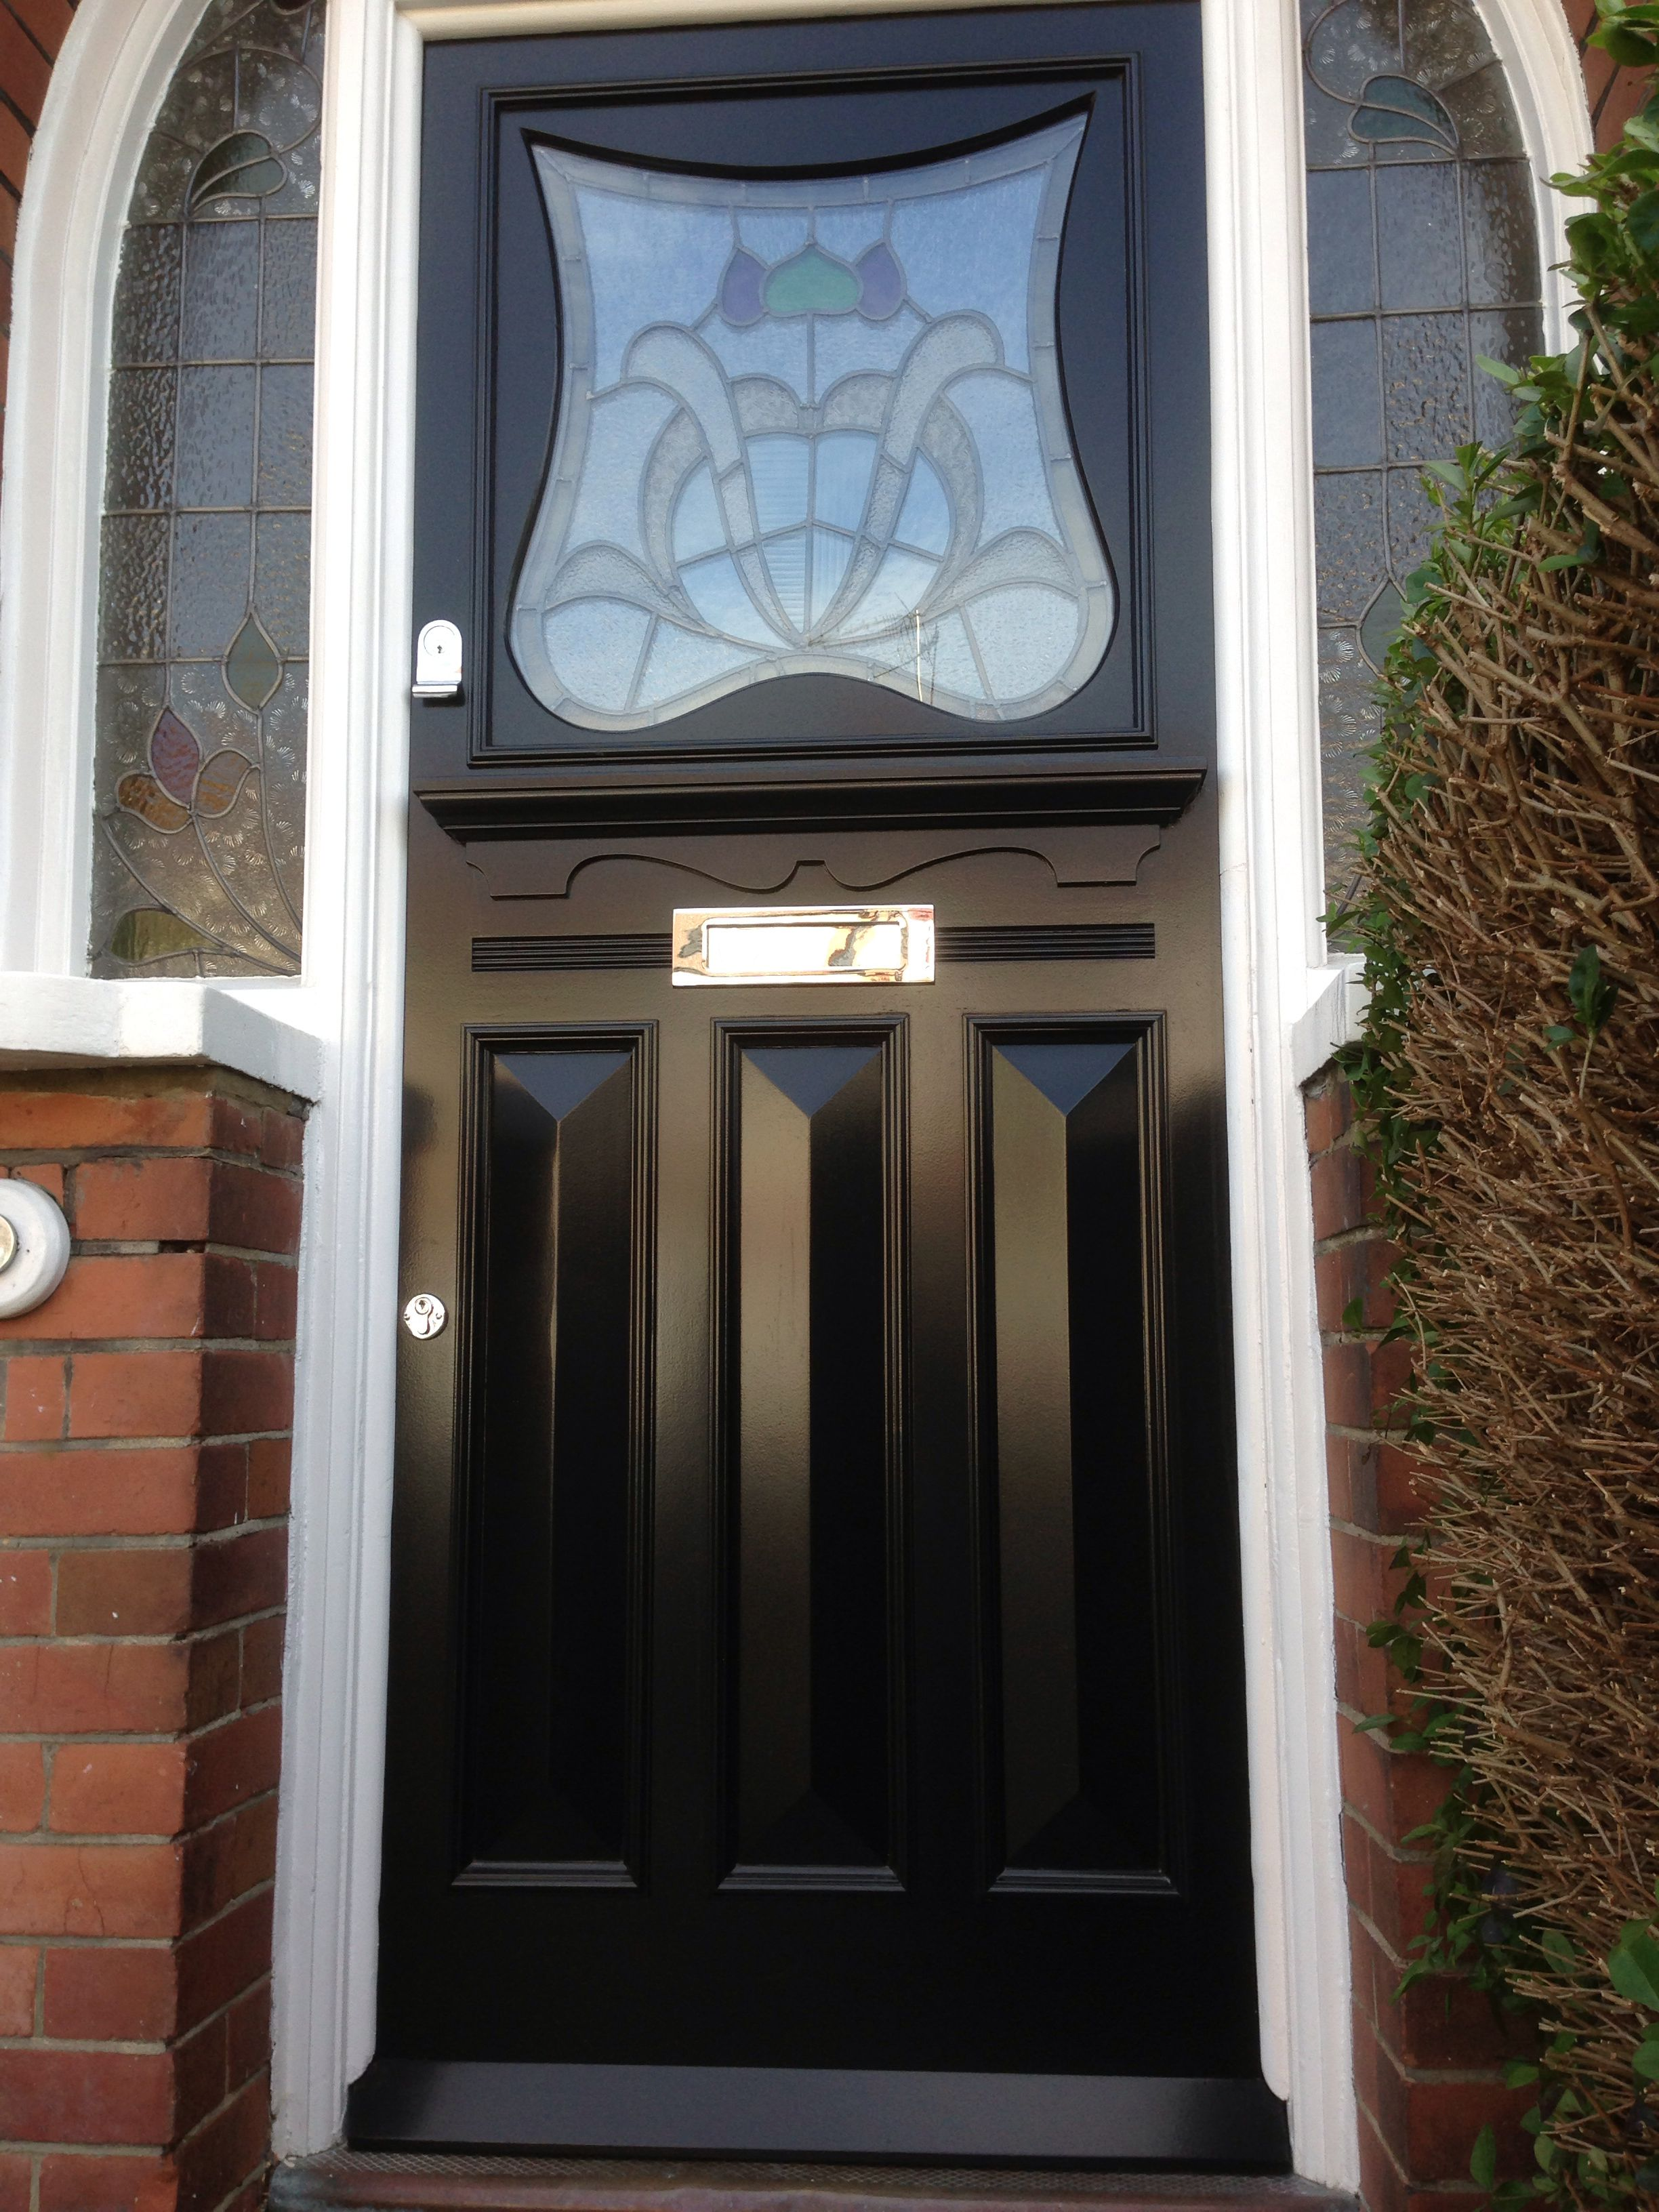 1930u0027s inspired entrance door fitted in Finchley London & 1930u0027s inspired entrance door fitted in Finchley London | 1930u0027s ... pezcame.com